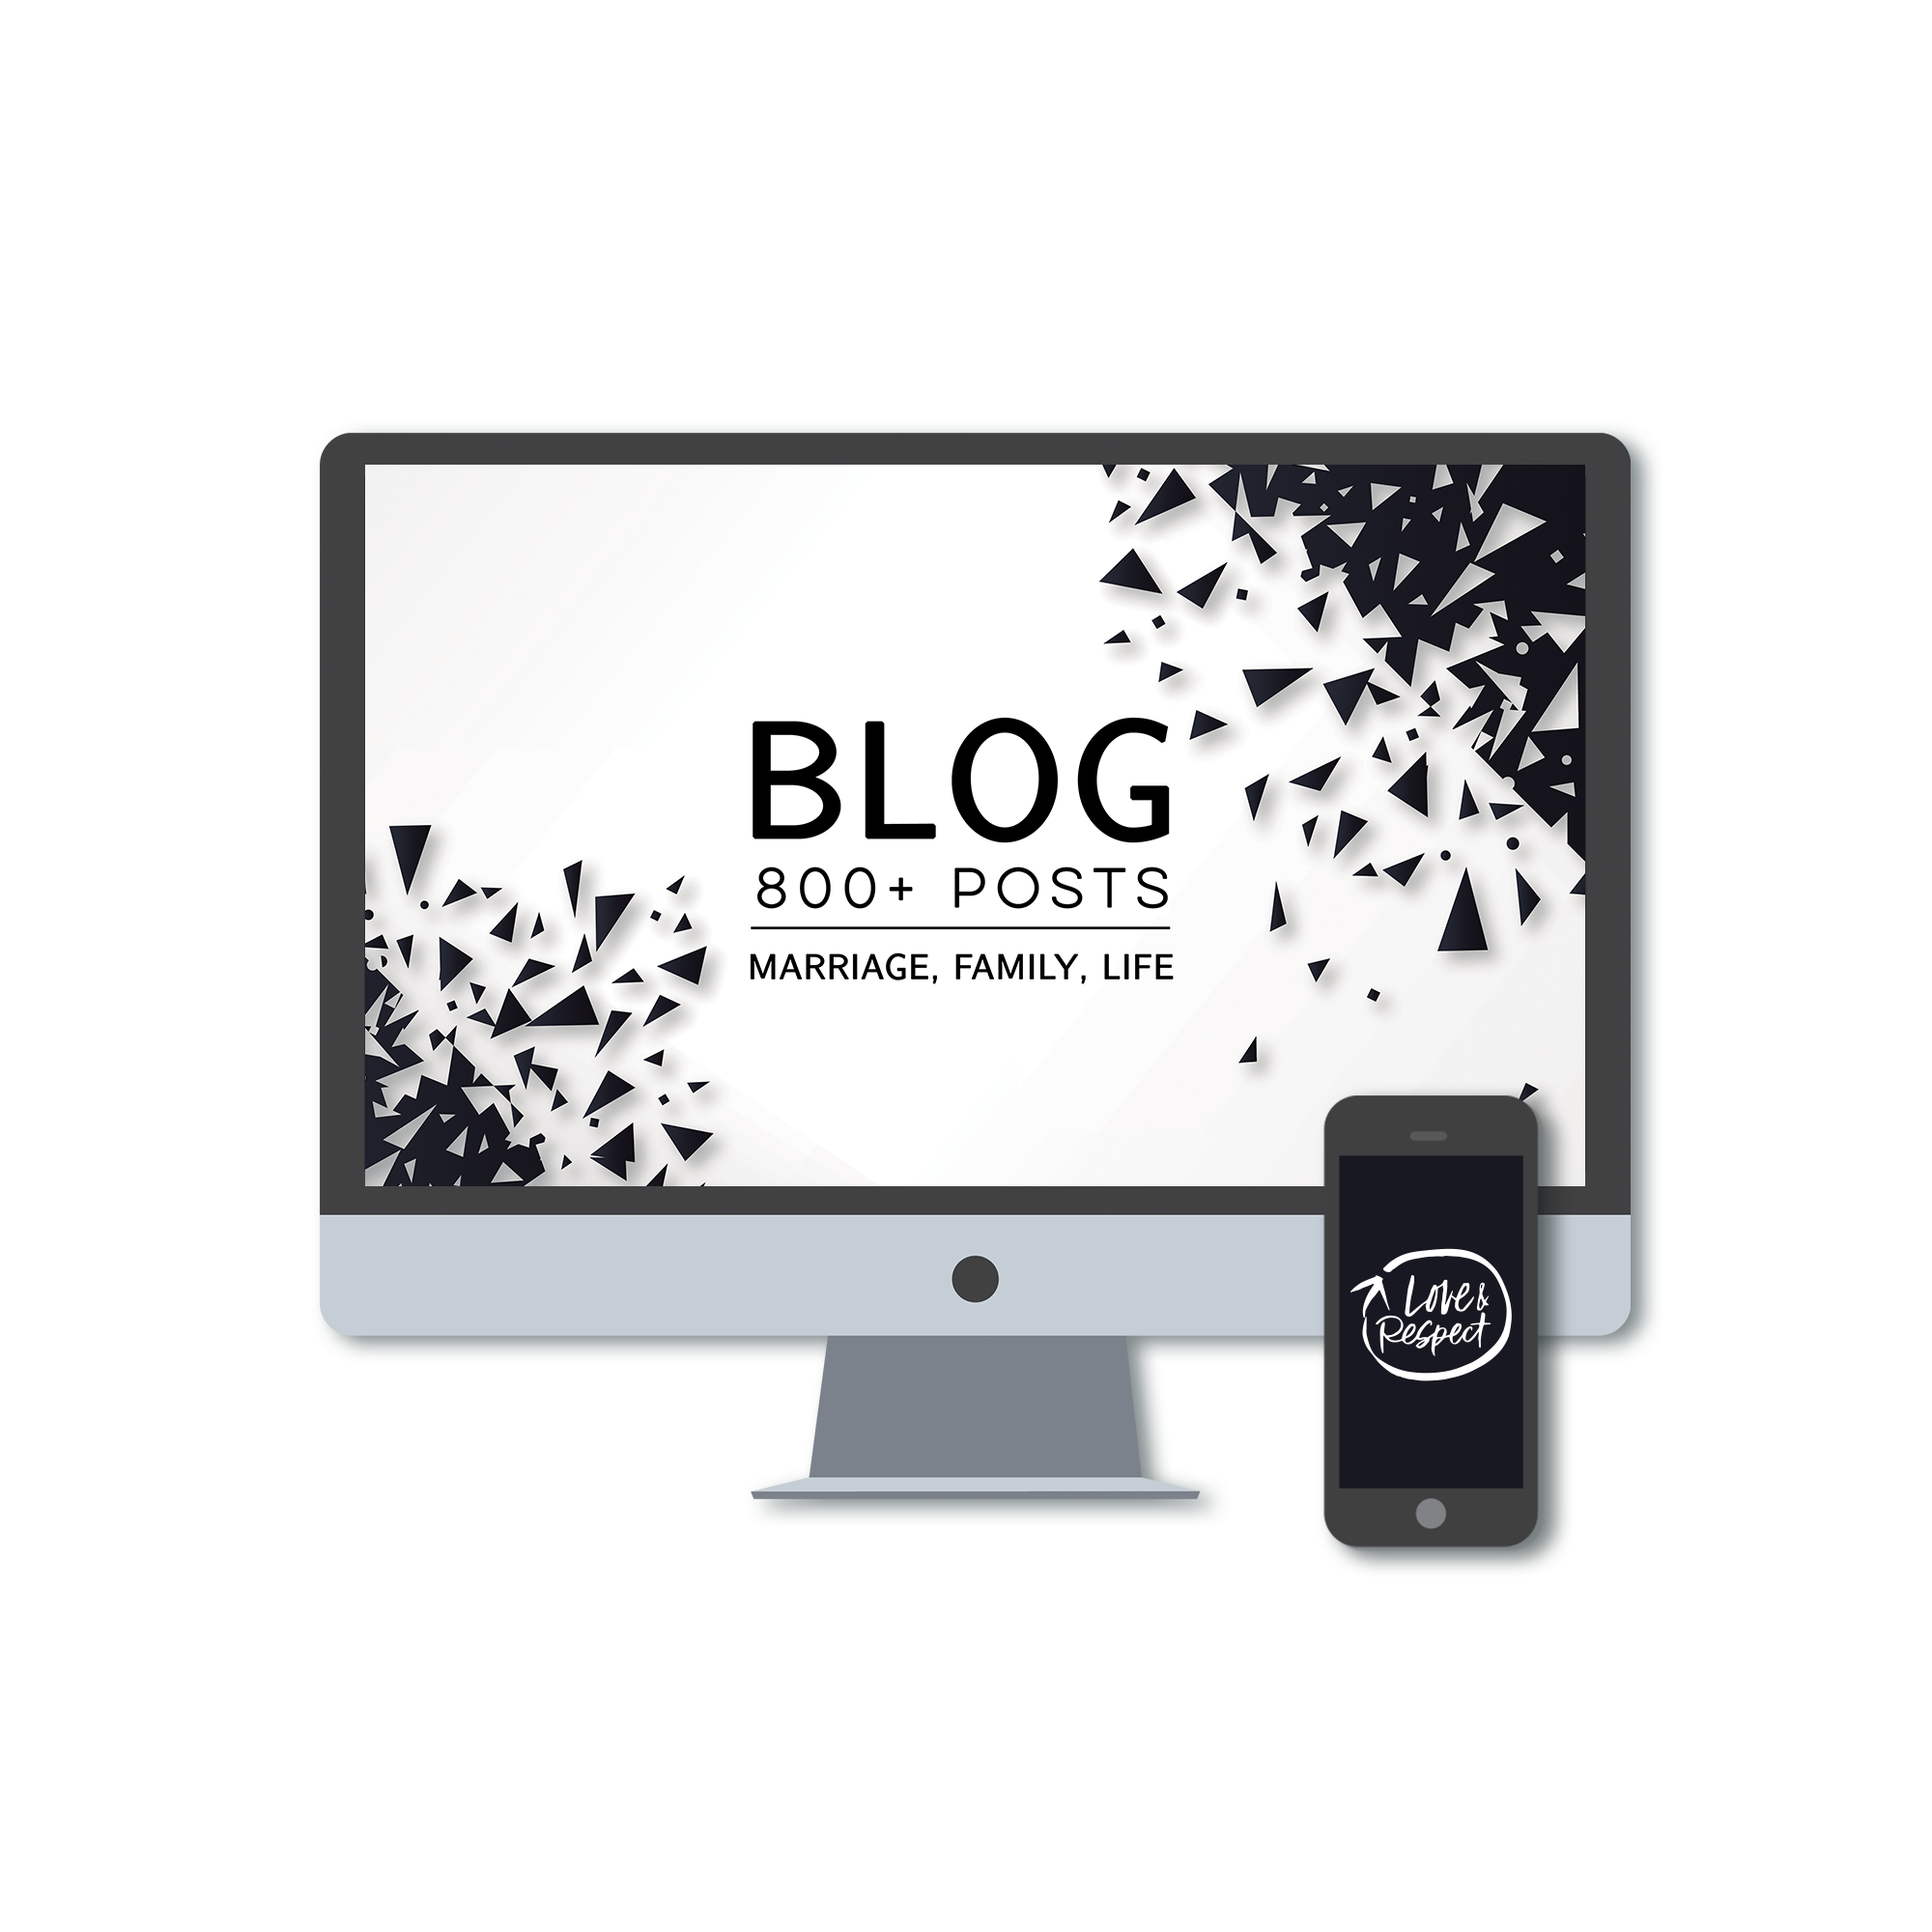 Blog - 800+ Posts! - From Marriage and Family, to Faith and Work, browse or read hundreds of topics and posts that may speak to a question or concern that you have based on your situation, add to what you have read or seen from Love & Respect, or introduce you to the concepts. We hope you learn and are encouraged through this free resource.